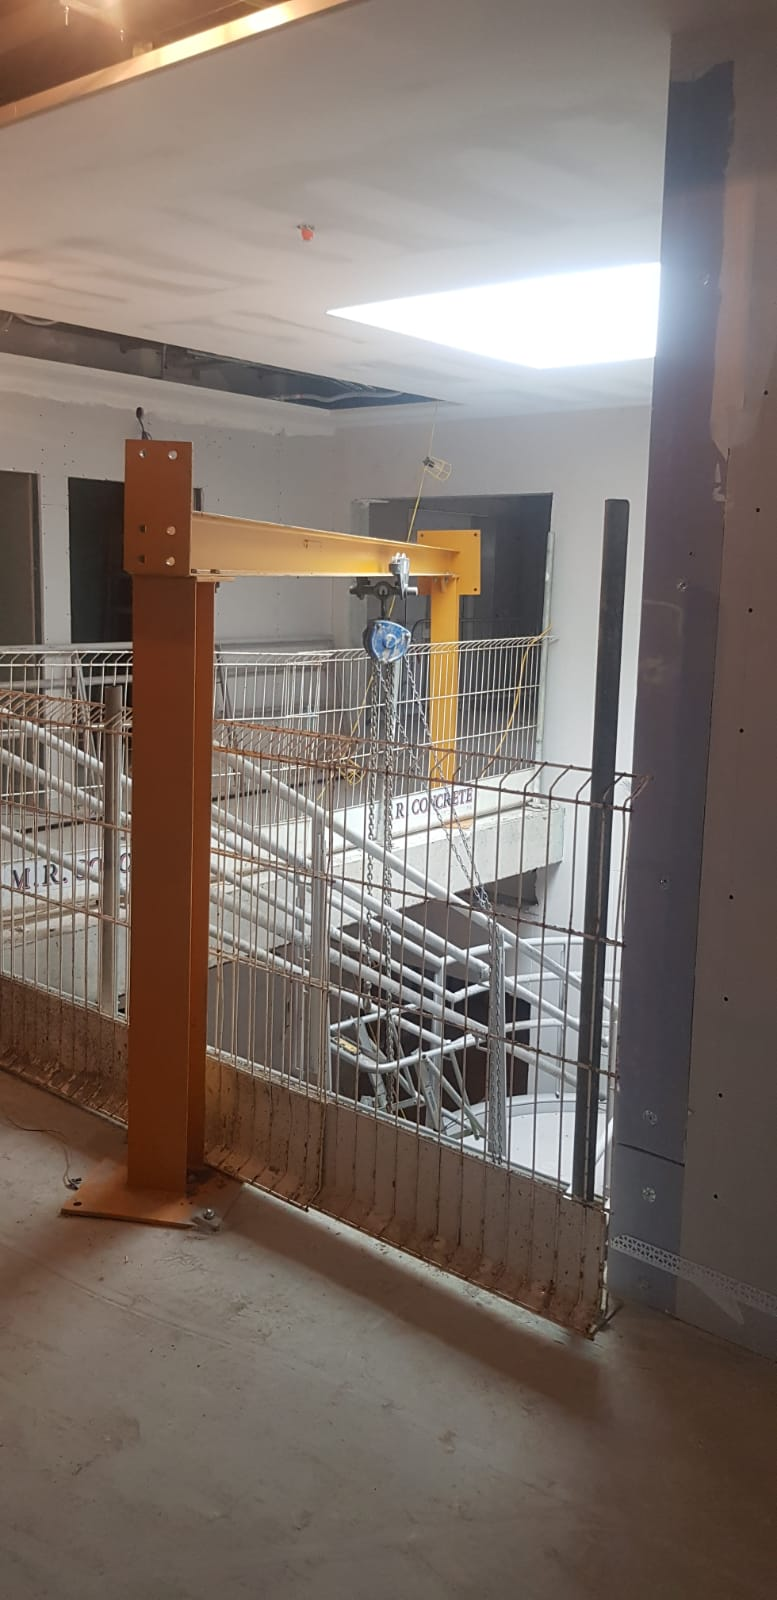 1 - Installation of feature stairs Peamount Hospital